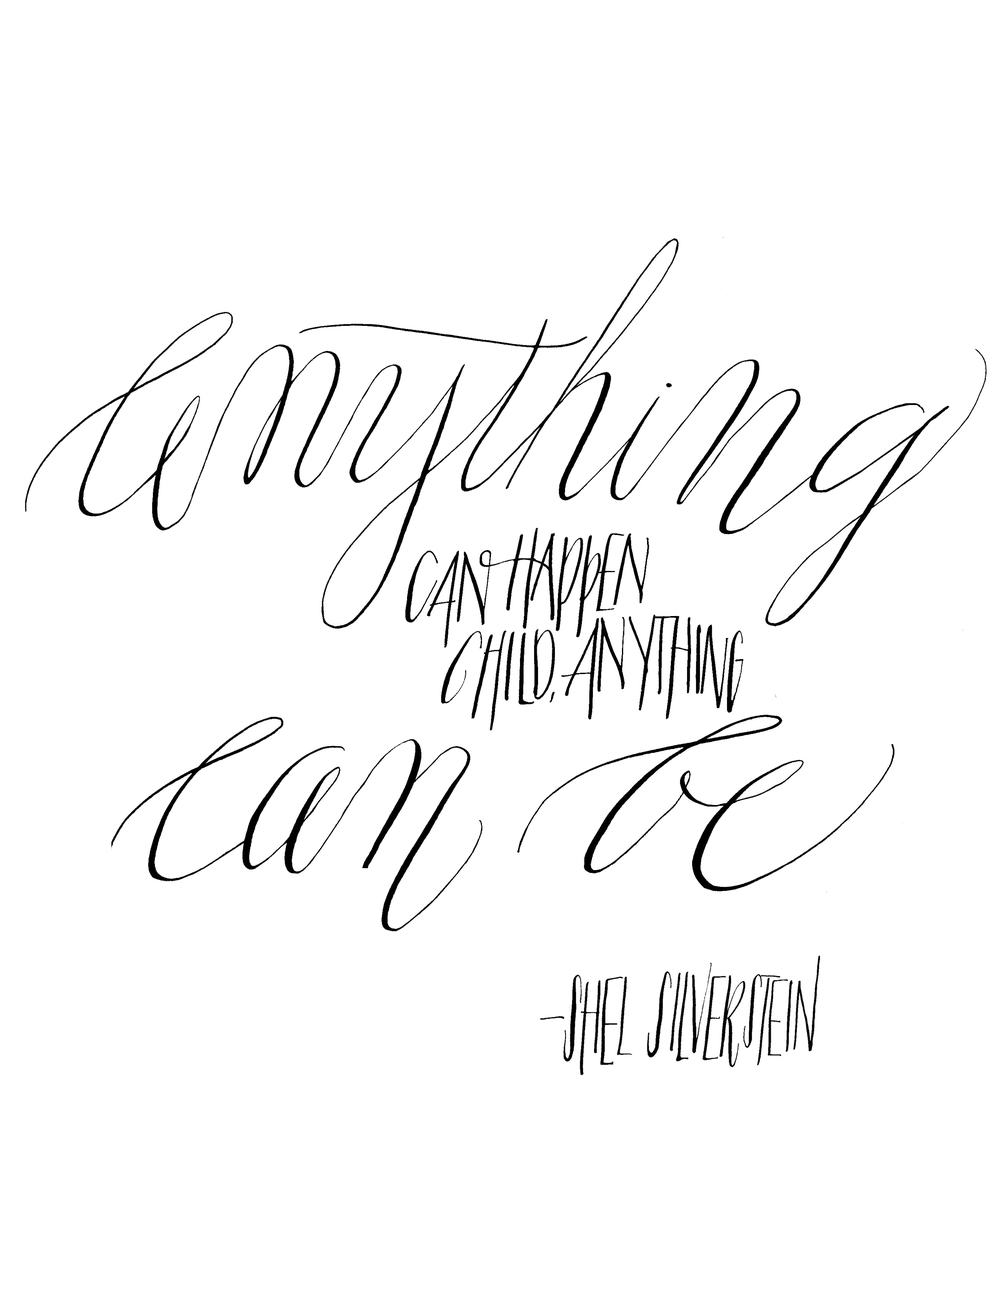 Anything can be.